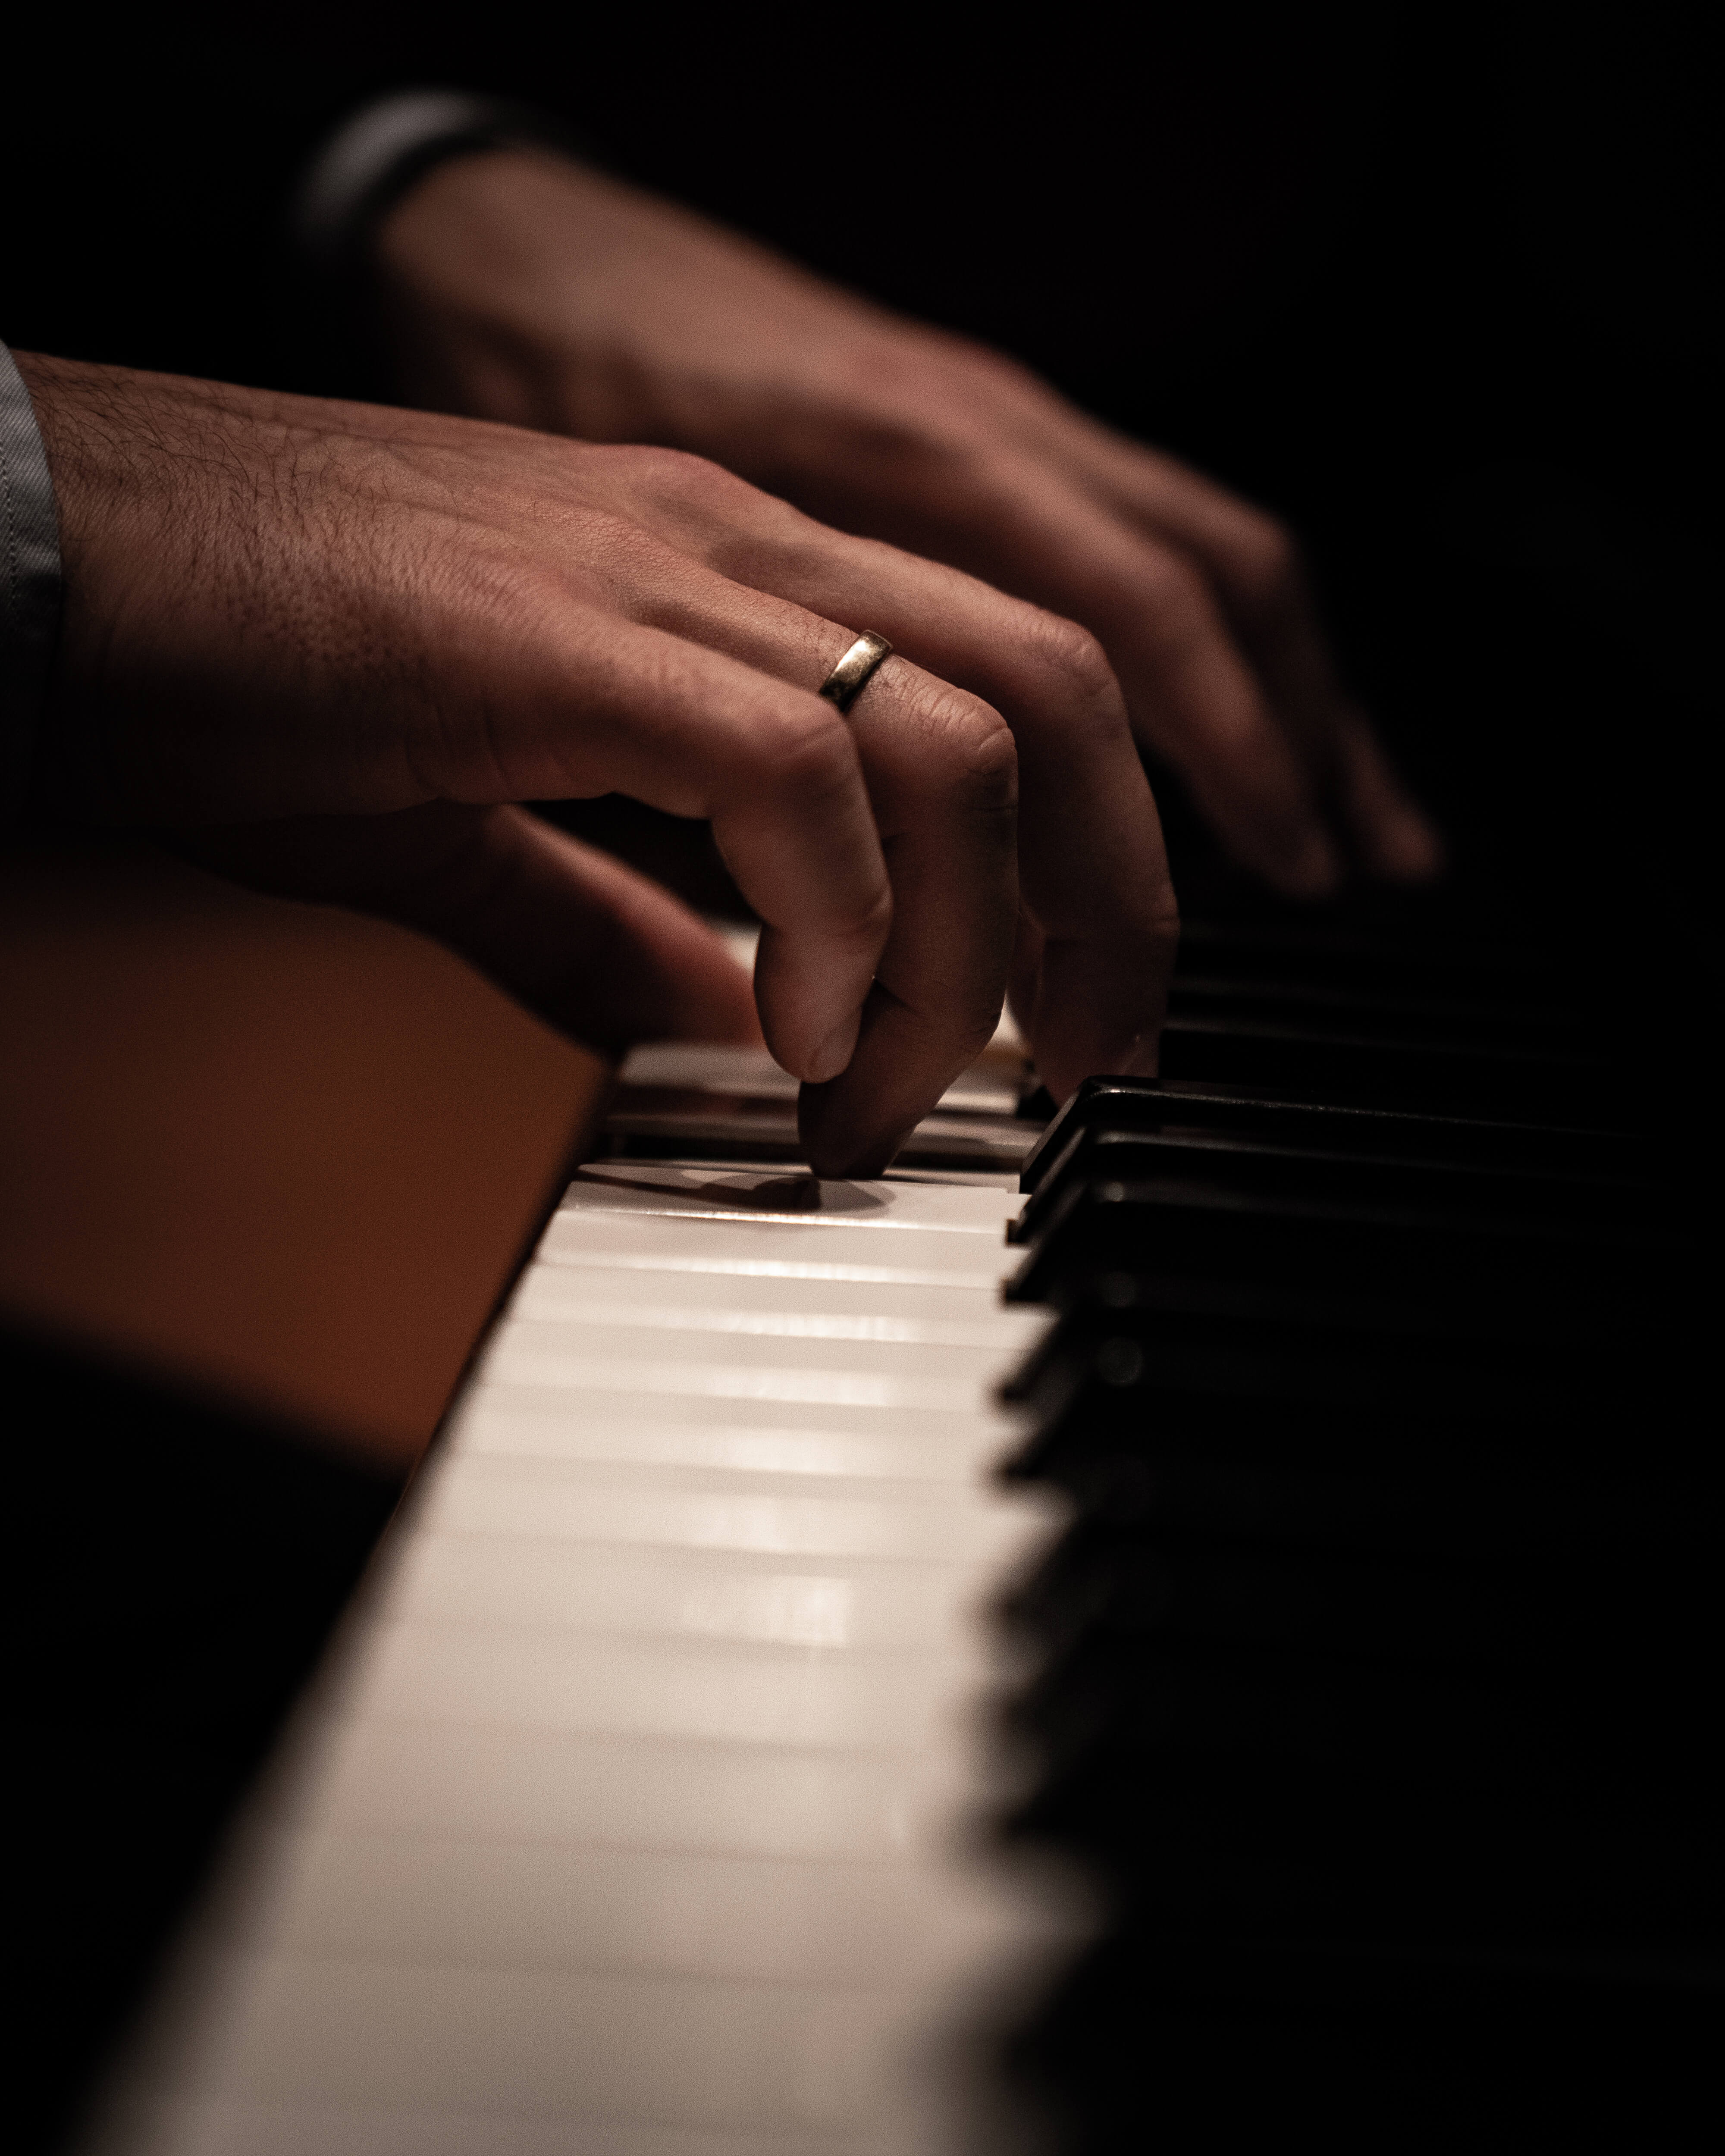 Two hands with a wedding ring playing piano.